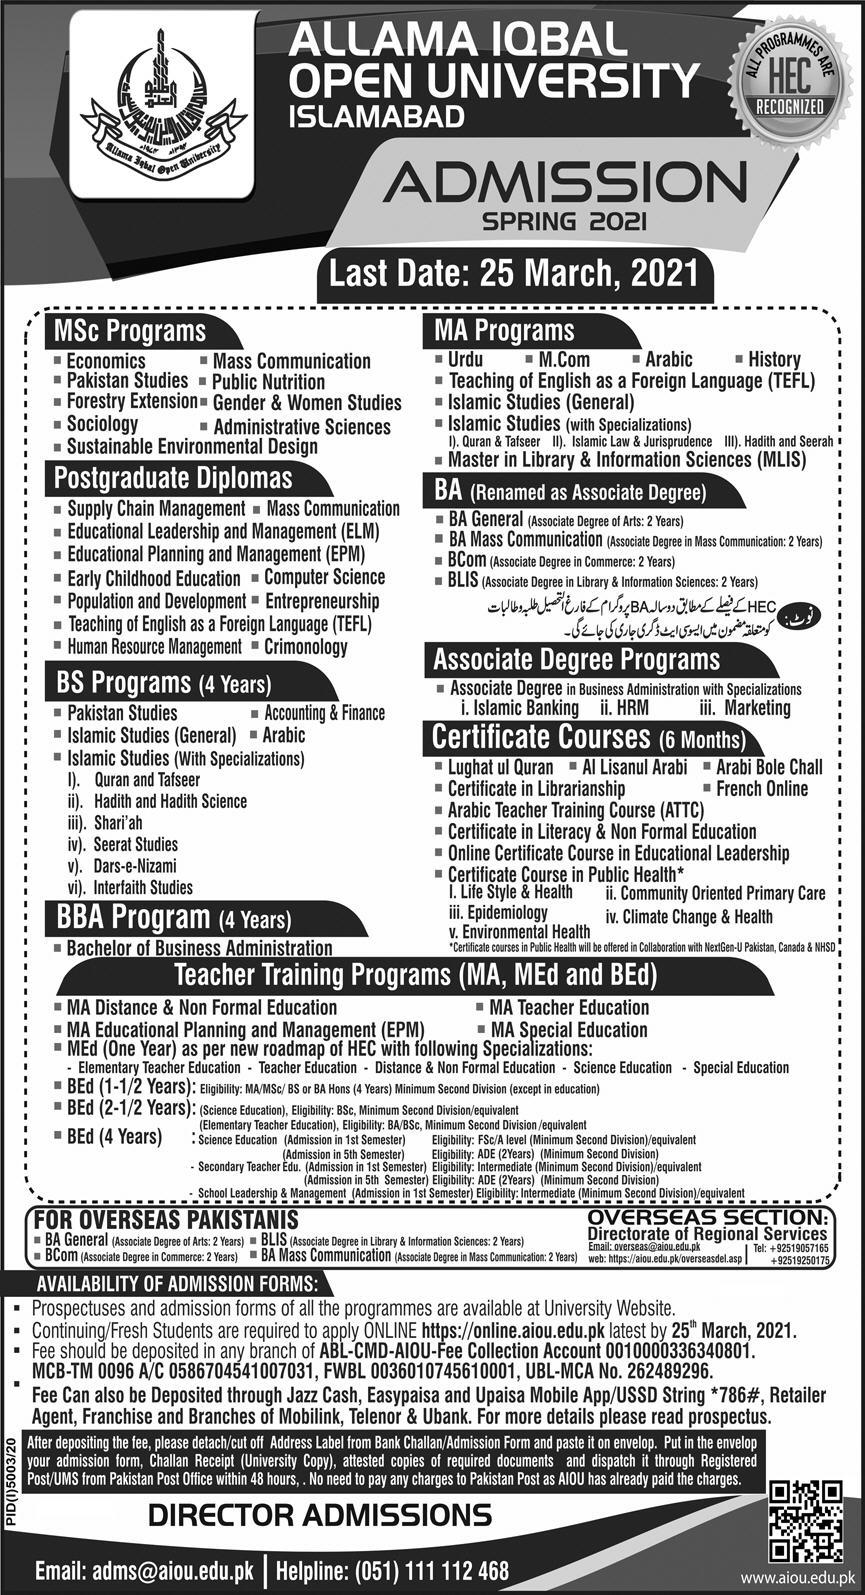 AIOU Matric Inter and Diploma Certificate (Phase I) Admission Spring 2021